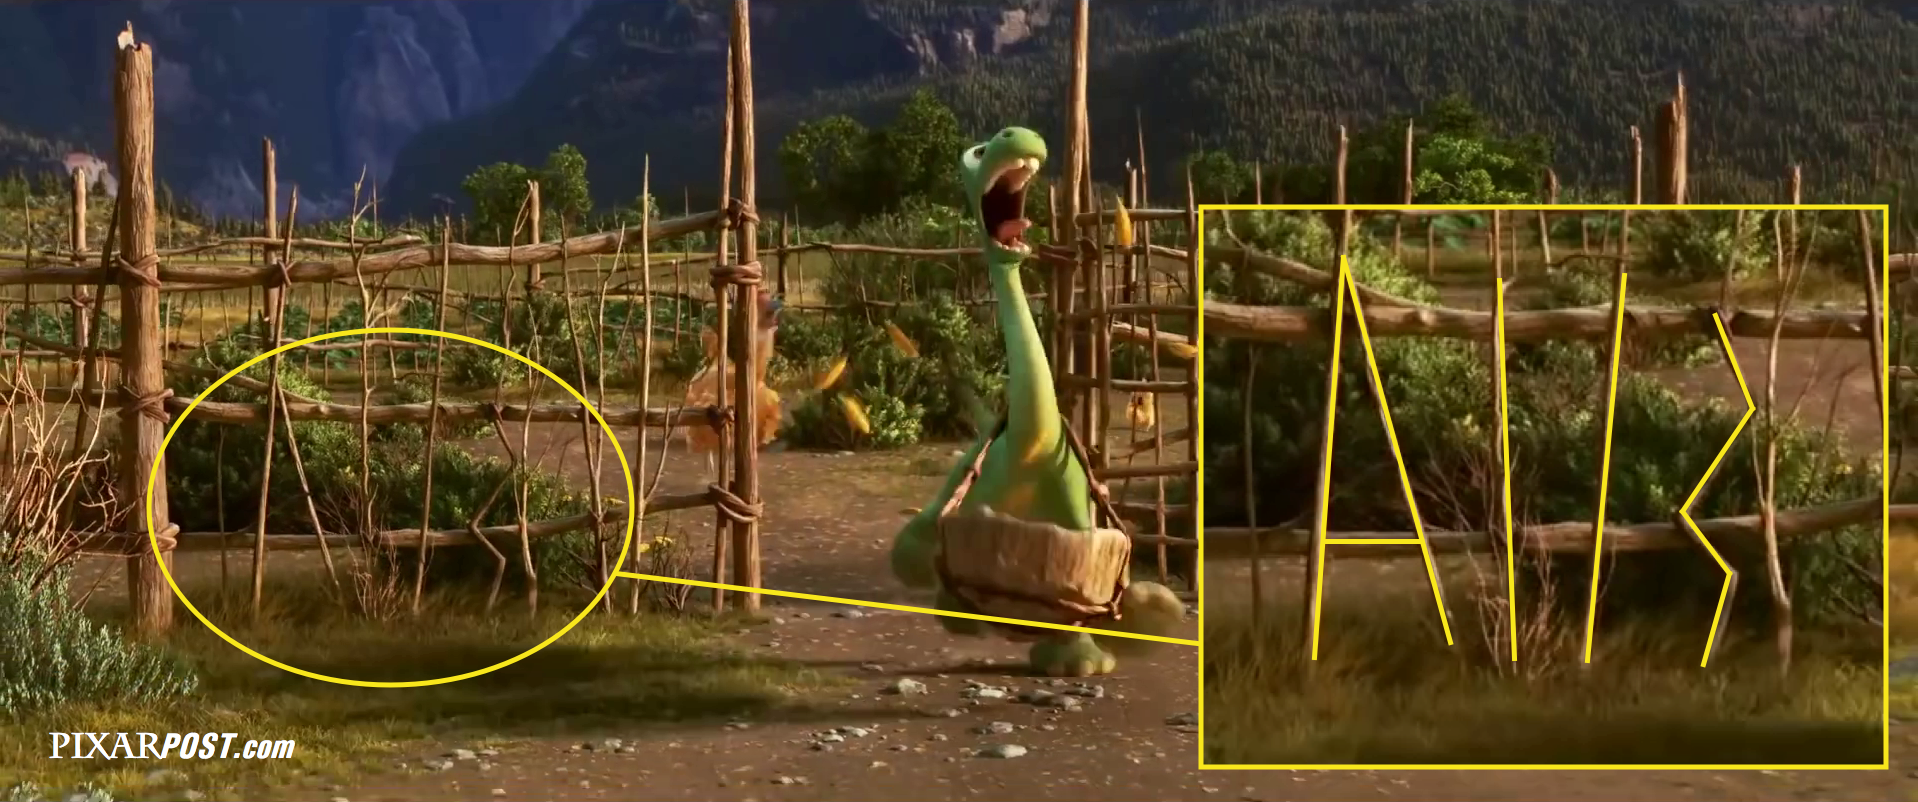 Pixar Post_The-Good-Dinosaur_A113_Easter-Egg.png